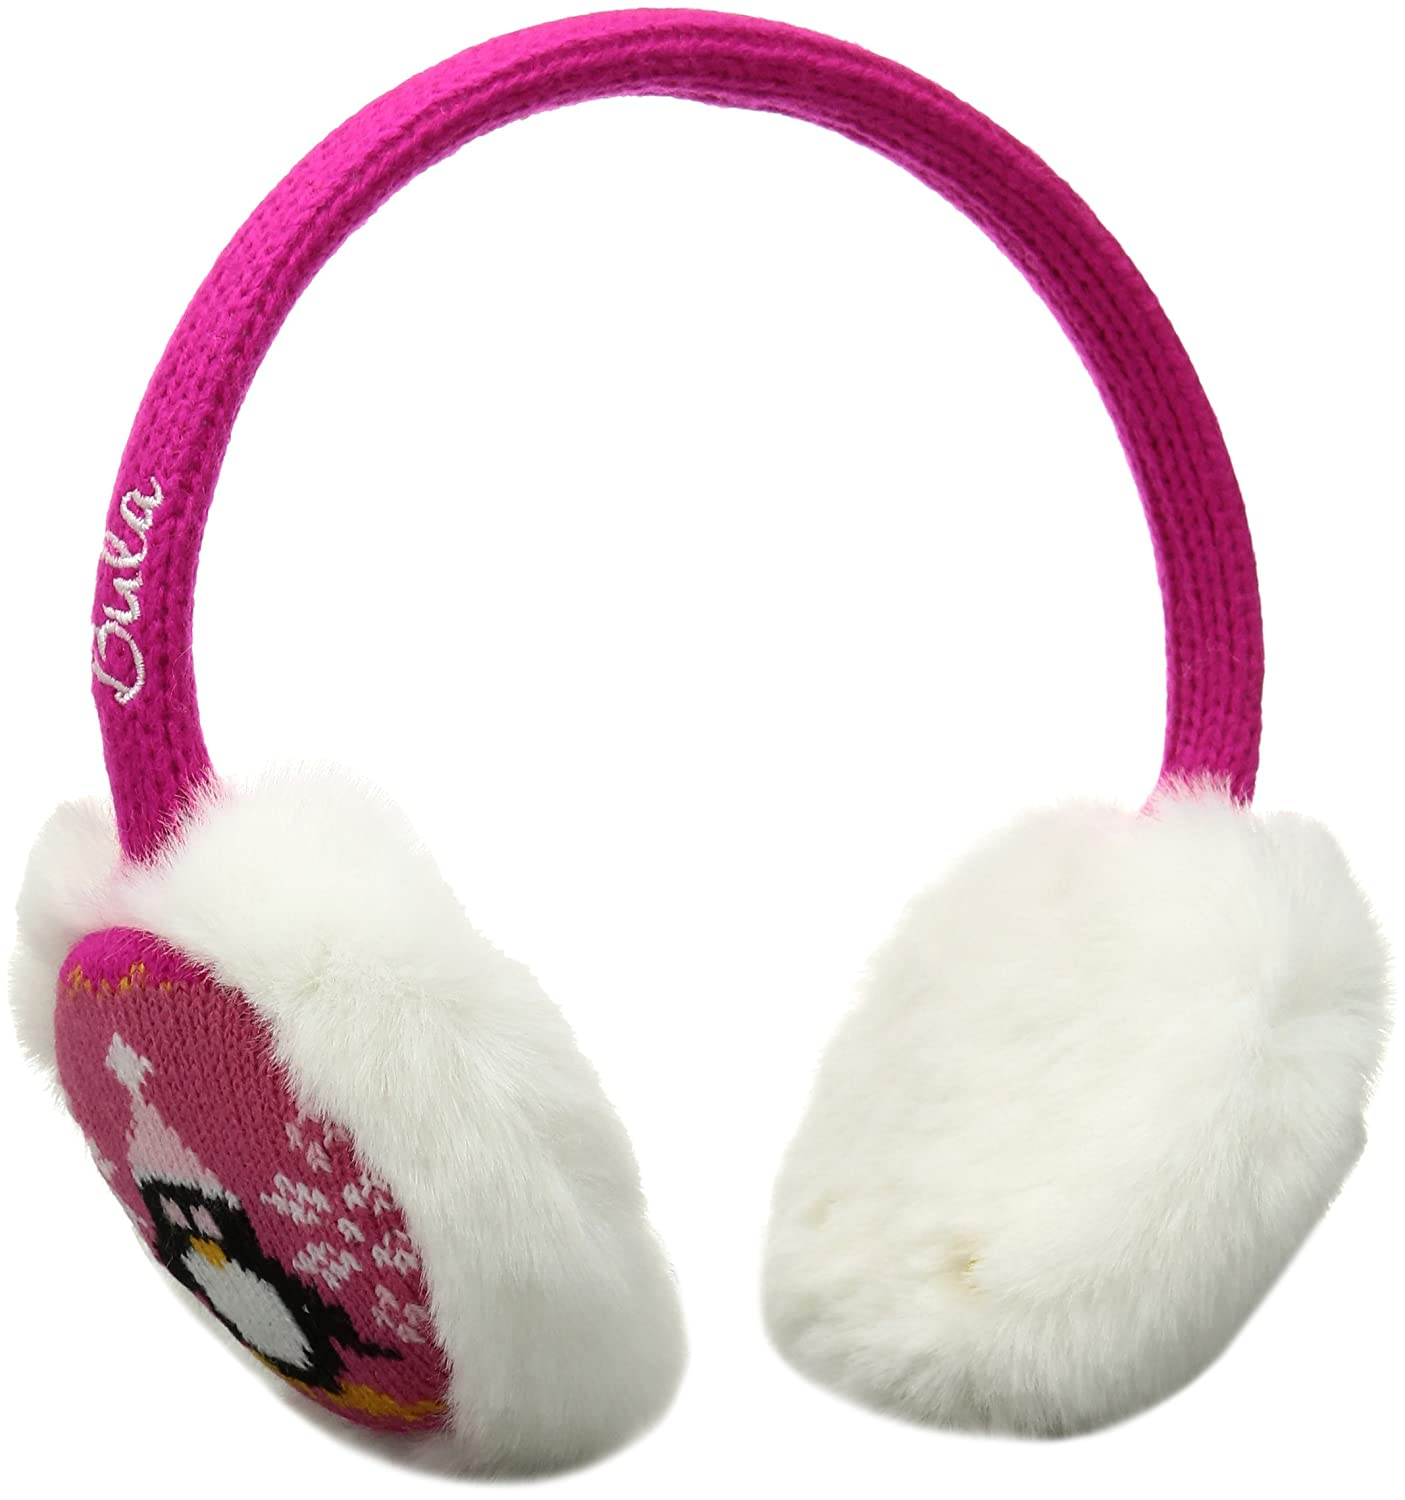 Bula Girl's Penguin Earmuffs, Black, One Size KTEPEN